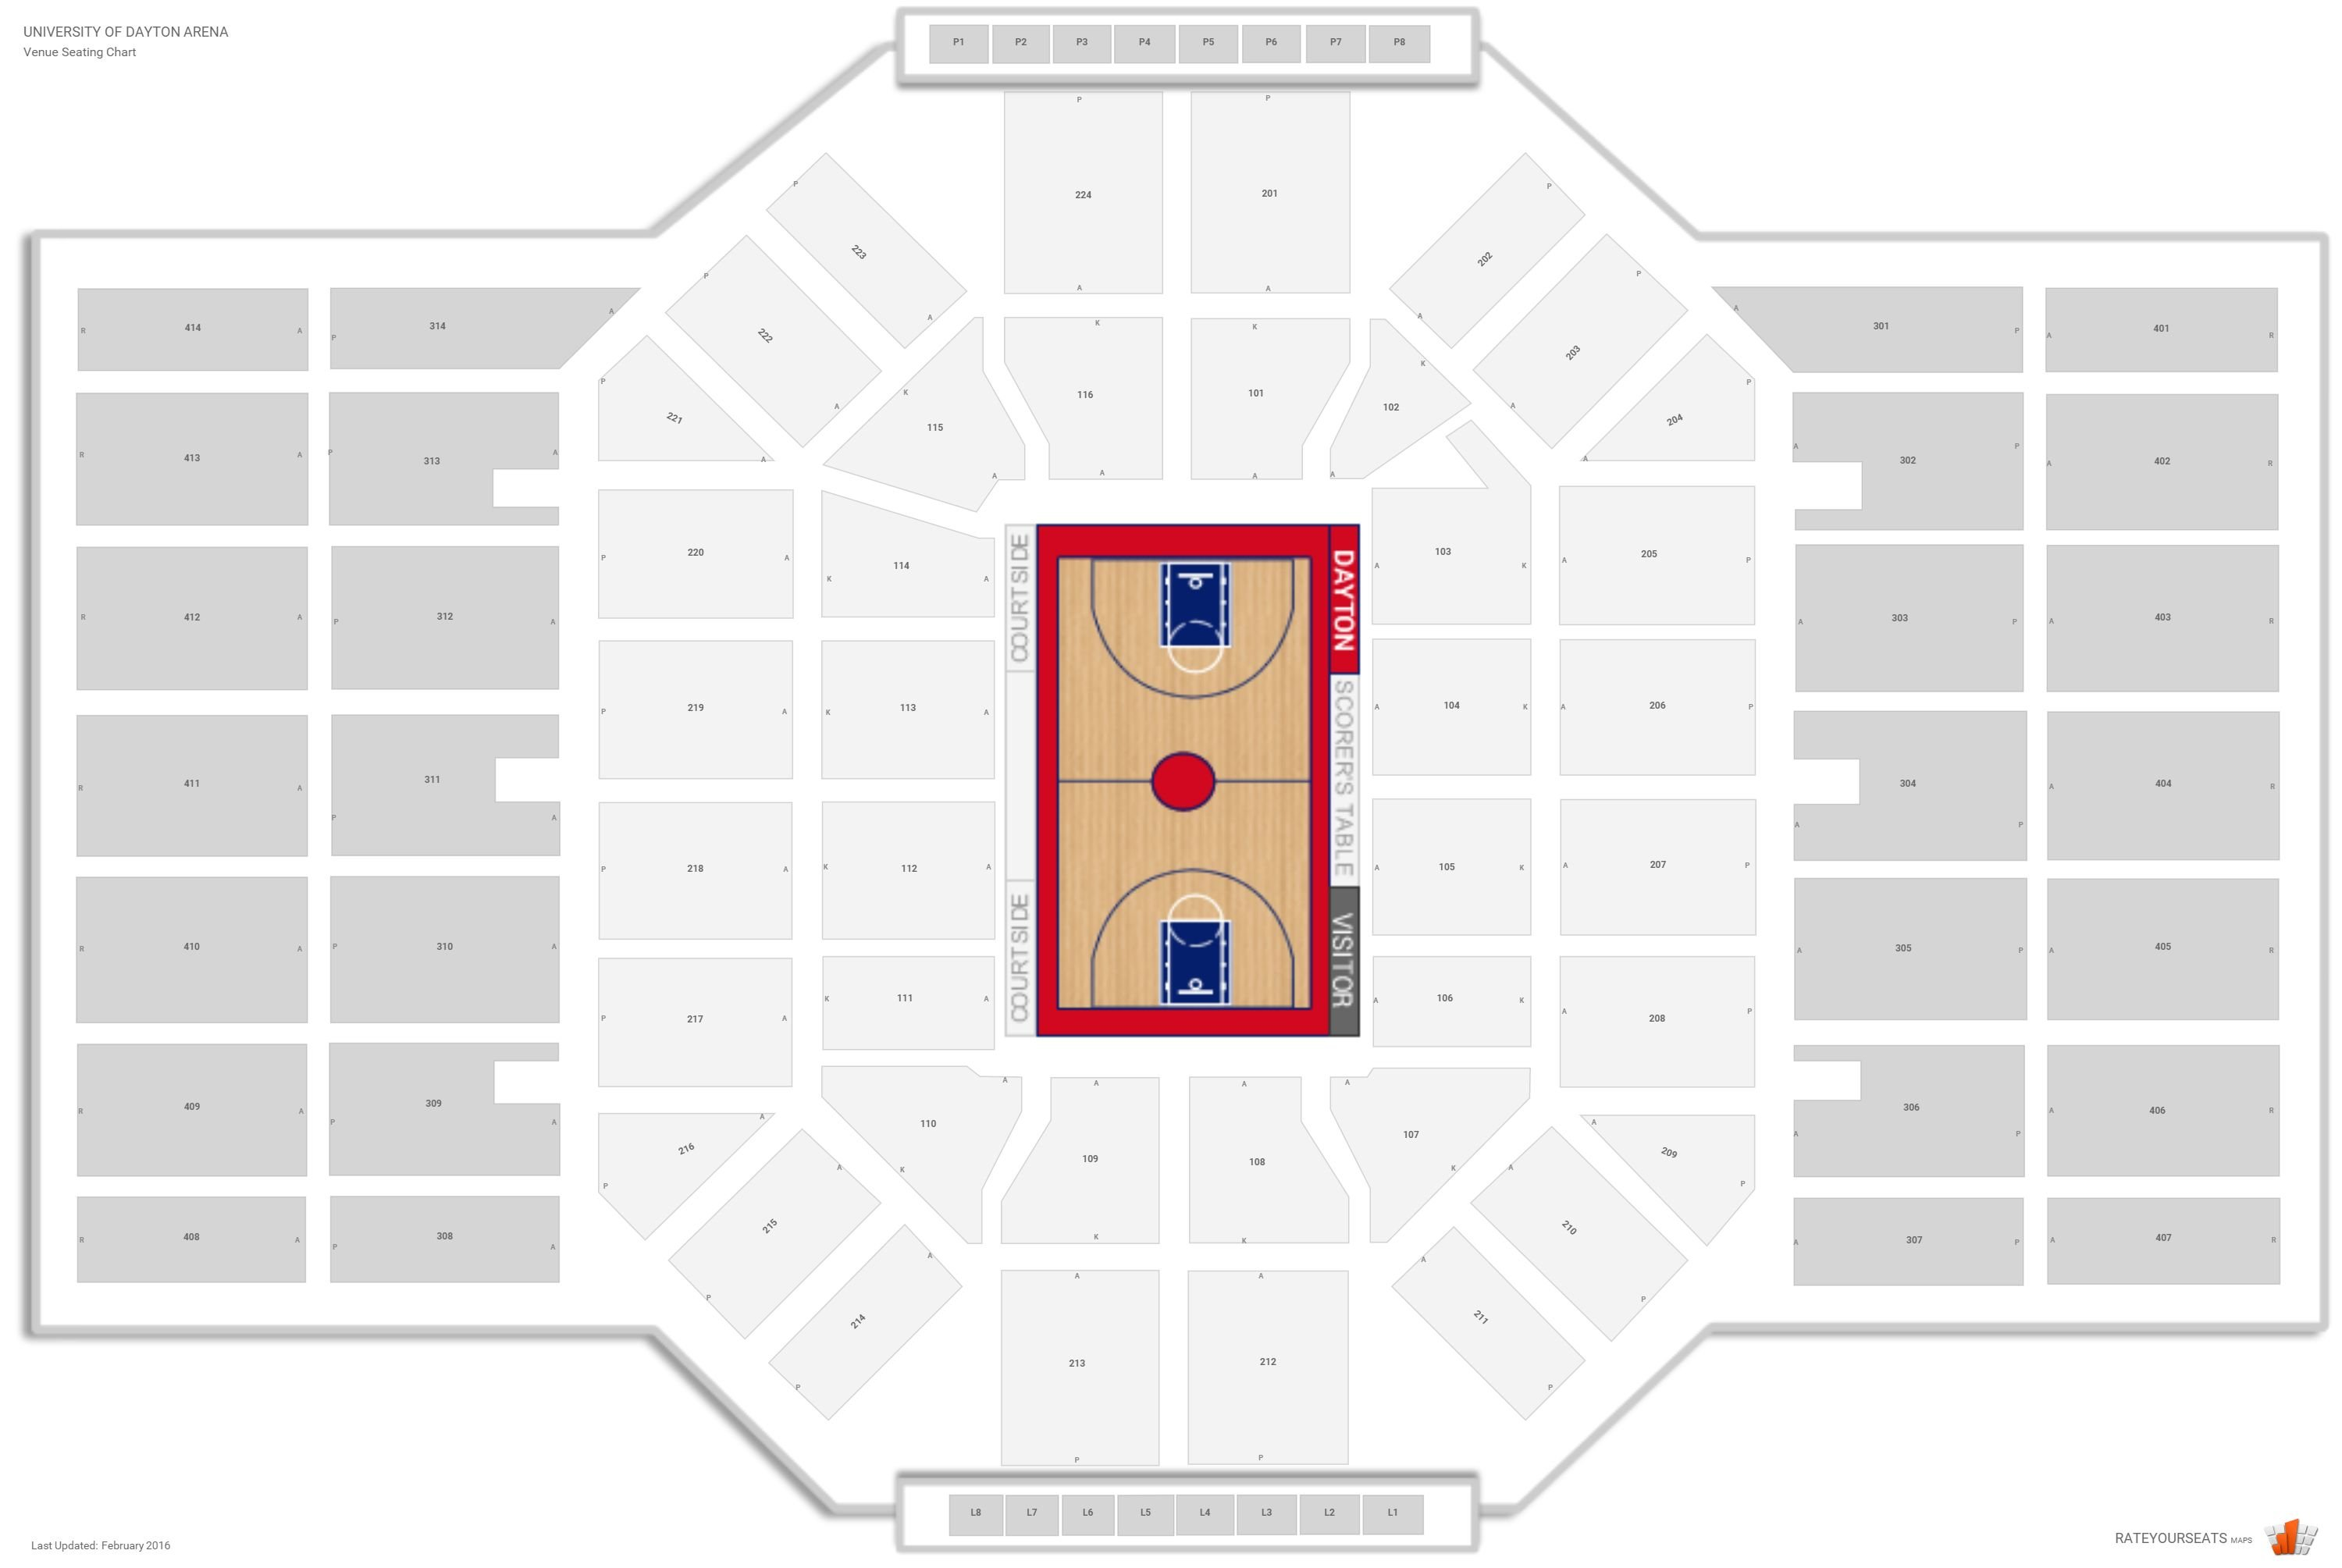 Ud Arena Seating Chart Brokeasshome Com